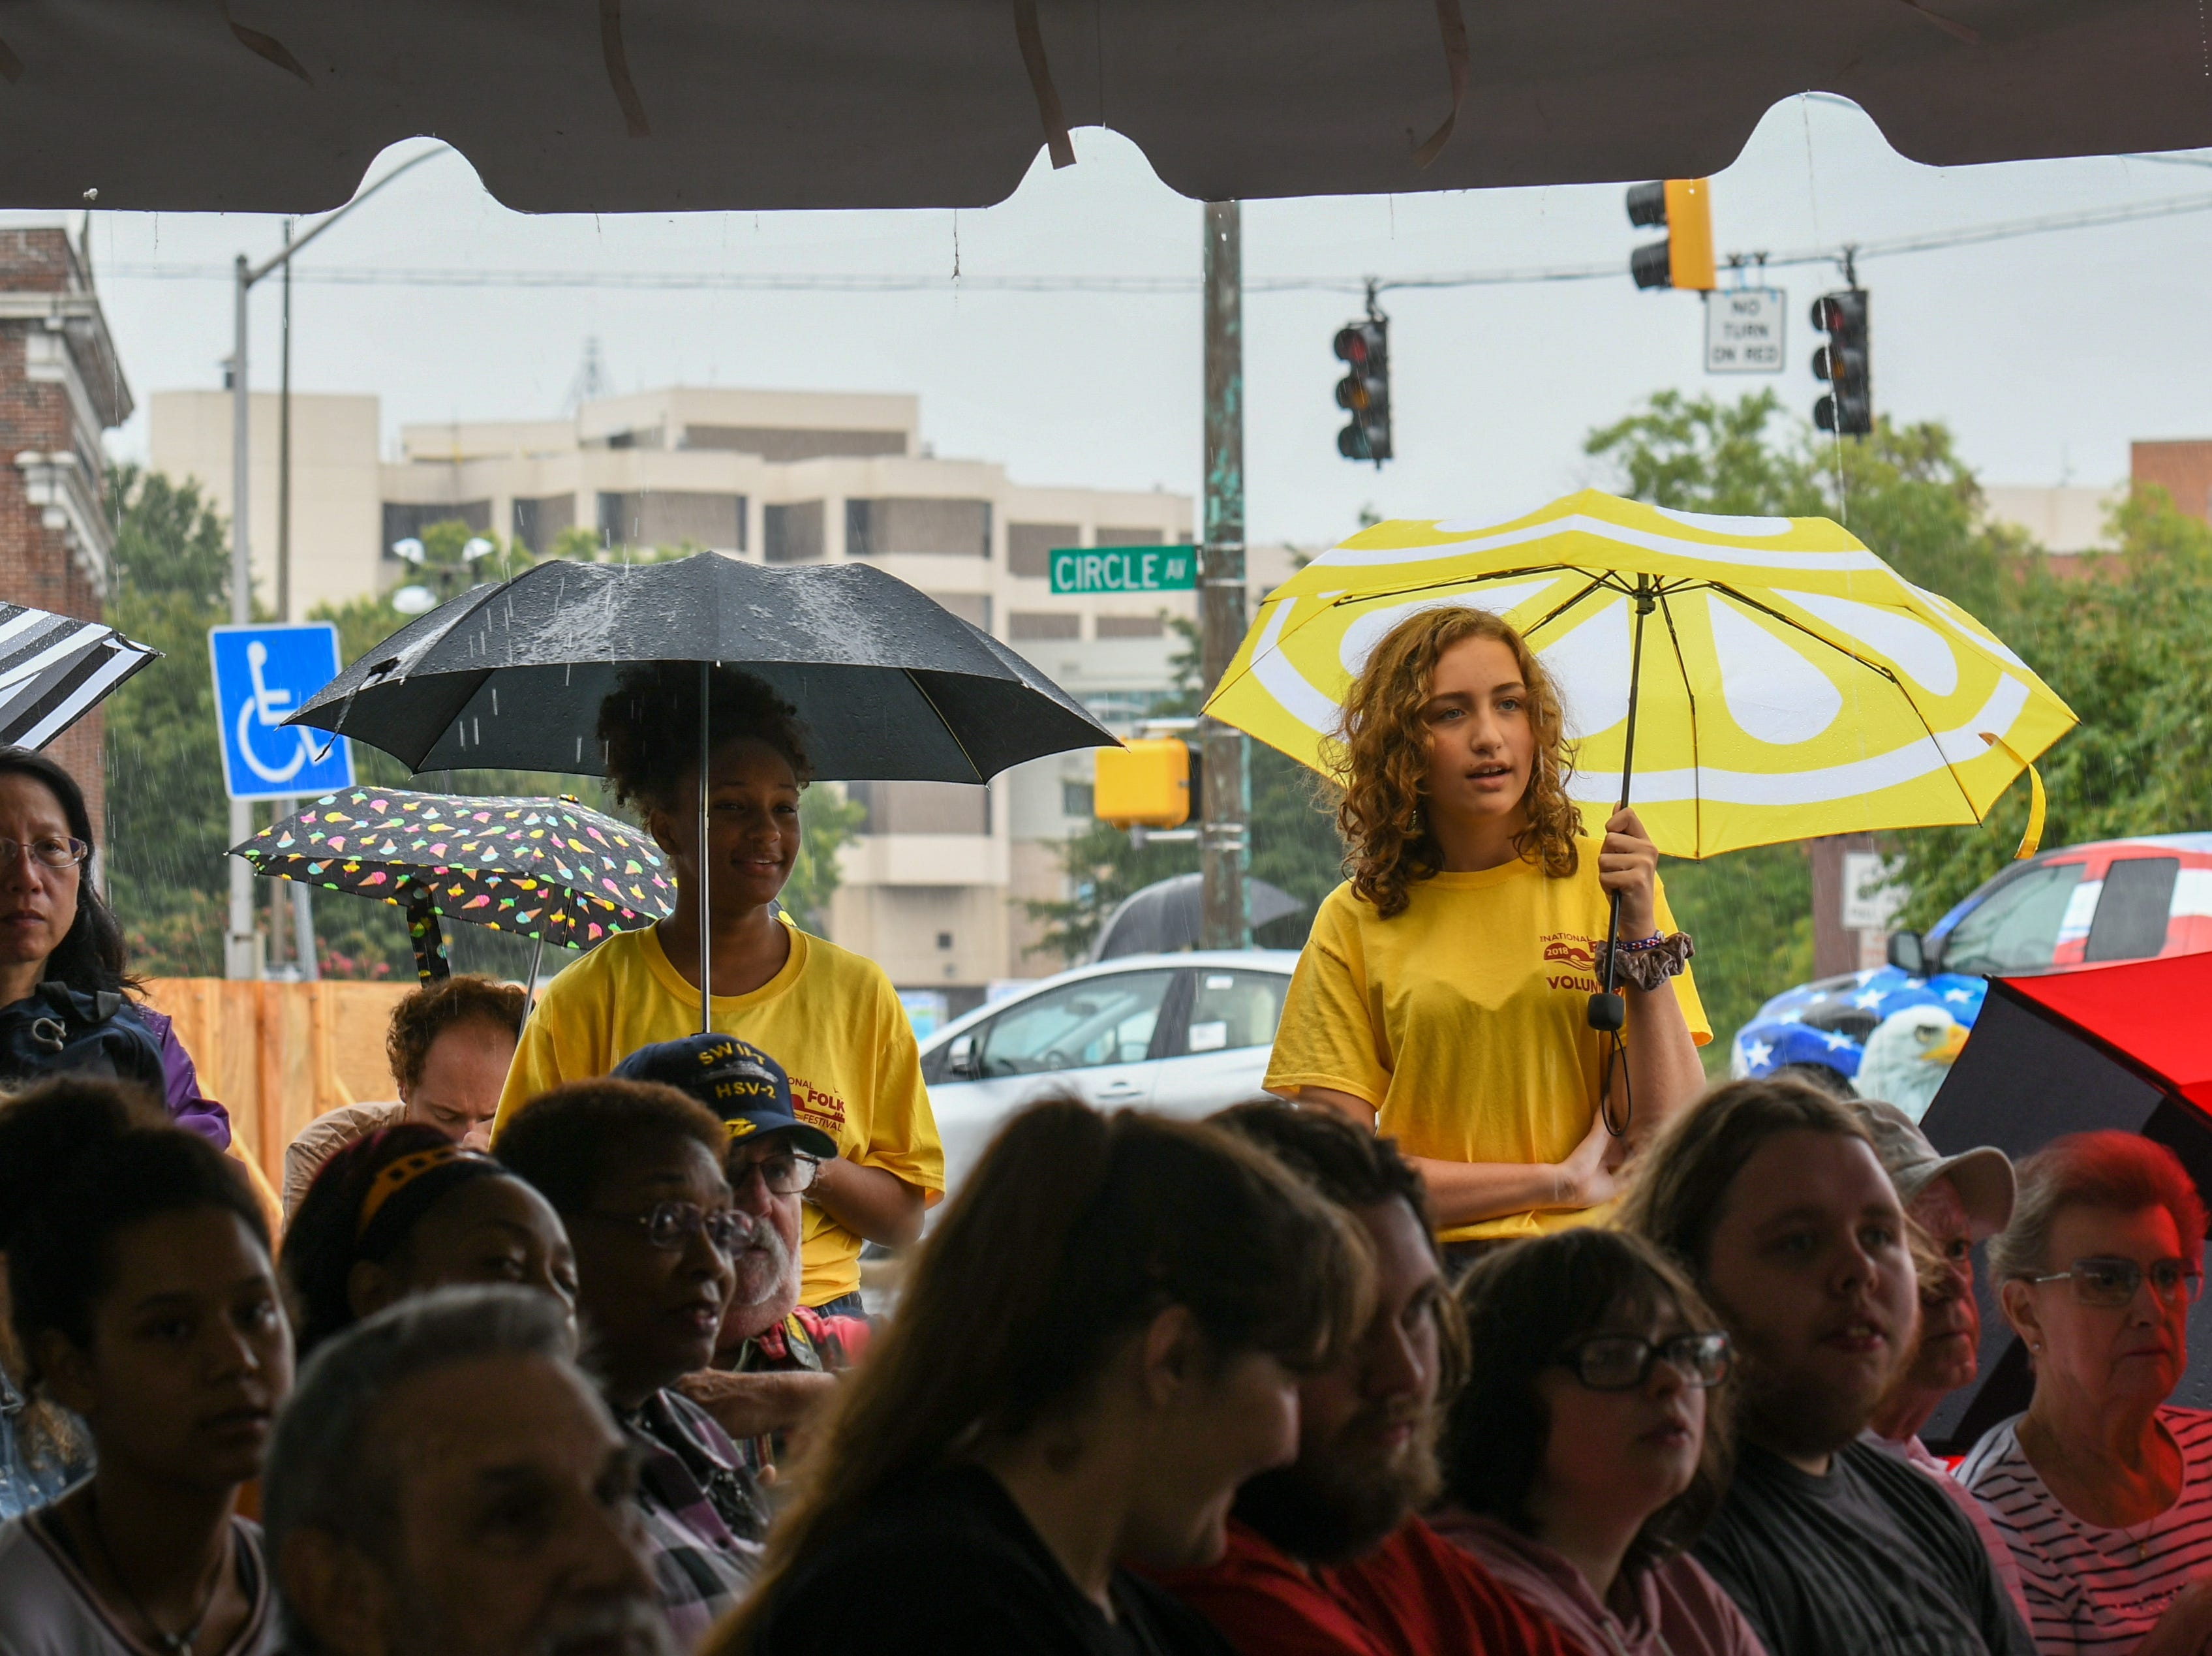 Crowds watch from the rain at the full tent at Sounds of Korea performance at the National Folk Festival in Salisbury on Saturday, Sept. 8.